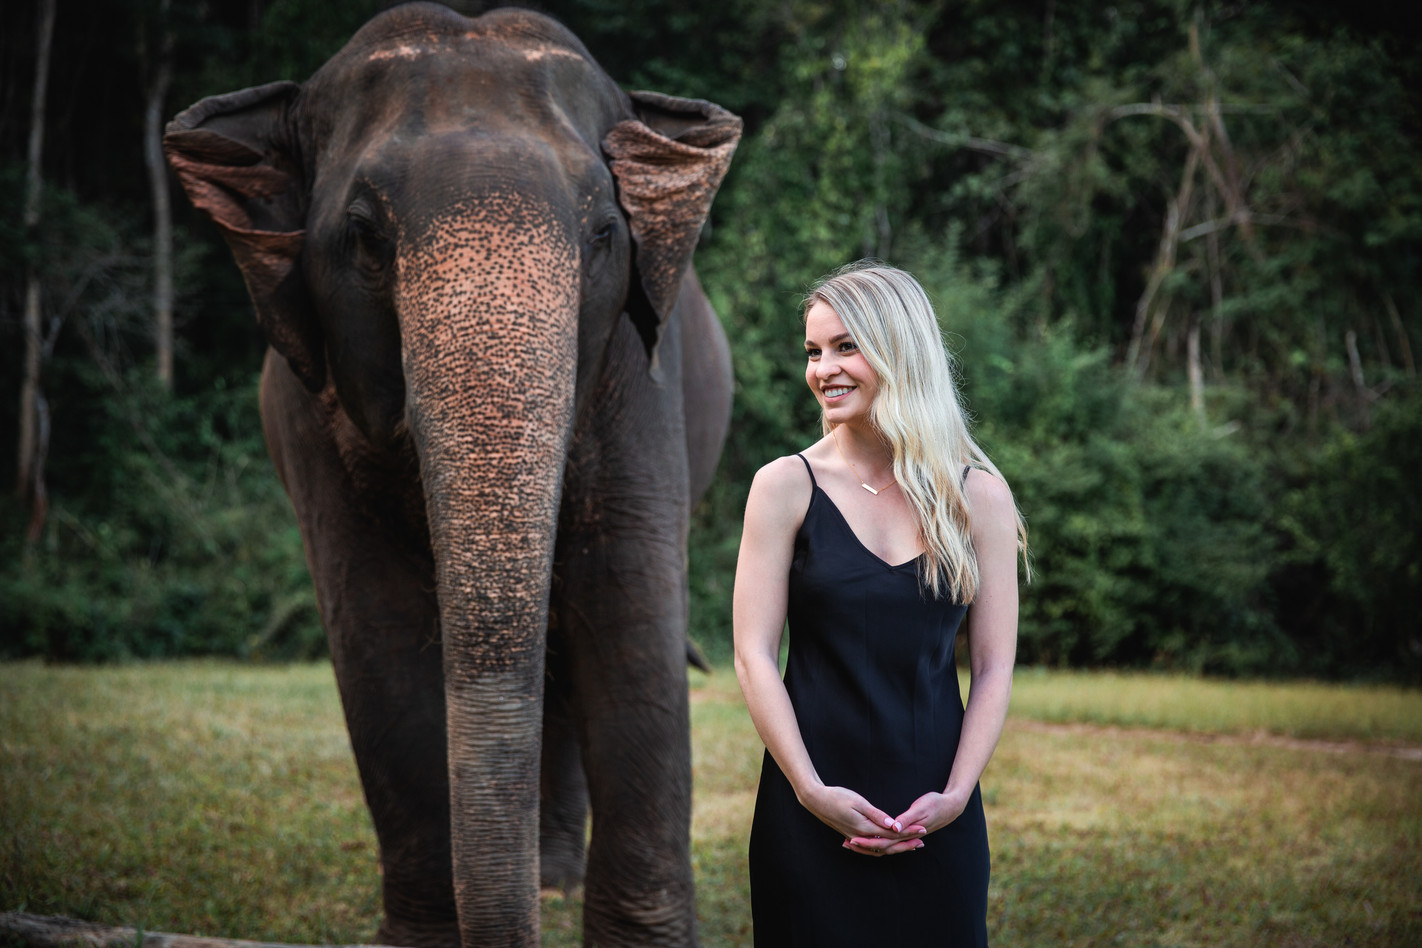 Model and elephant